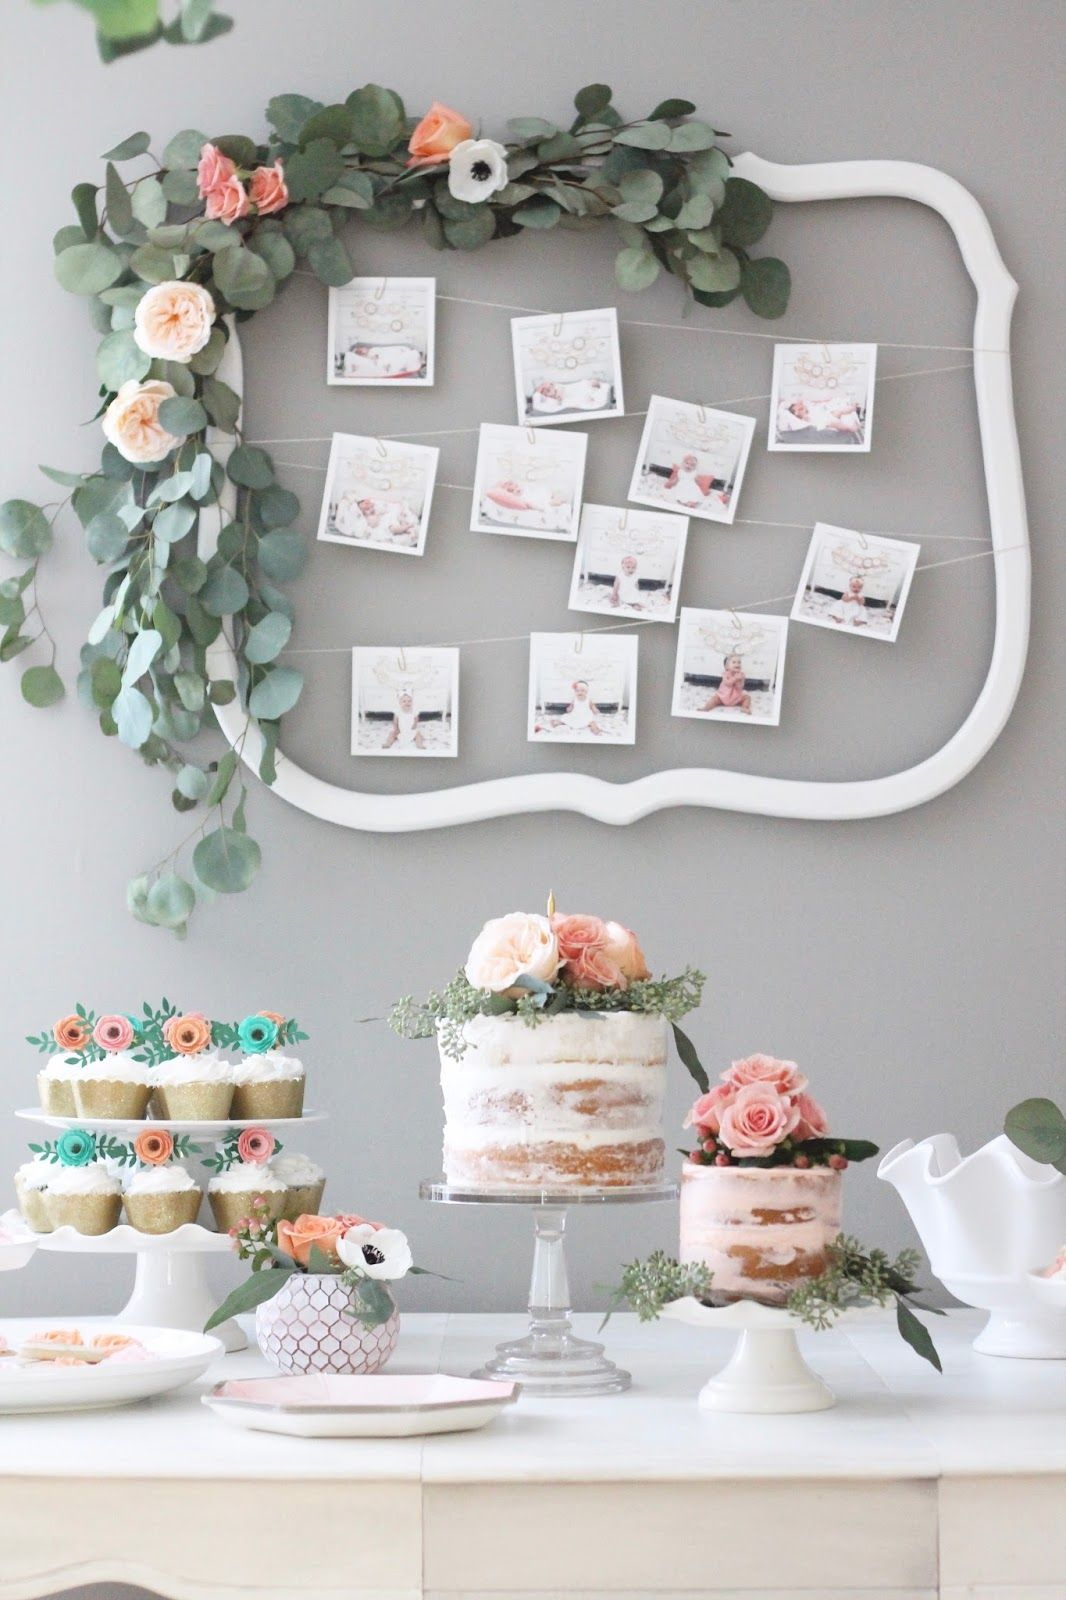 A Rifle Paper Co Inspired Floral First Birthday Party | My Home + ...